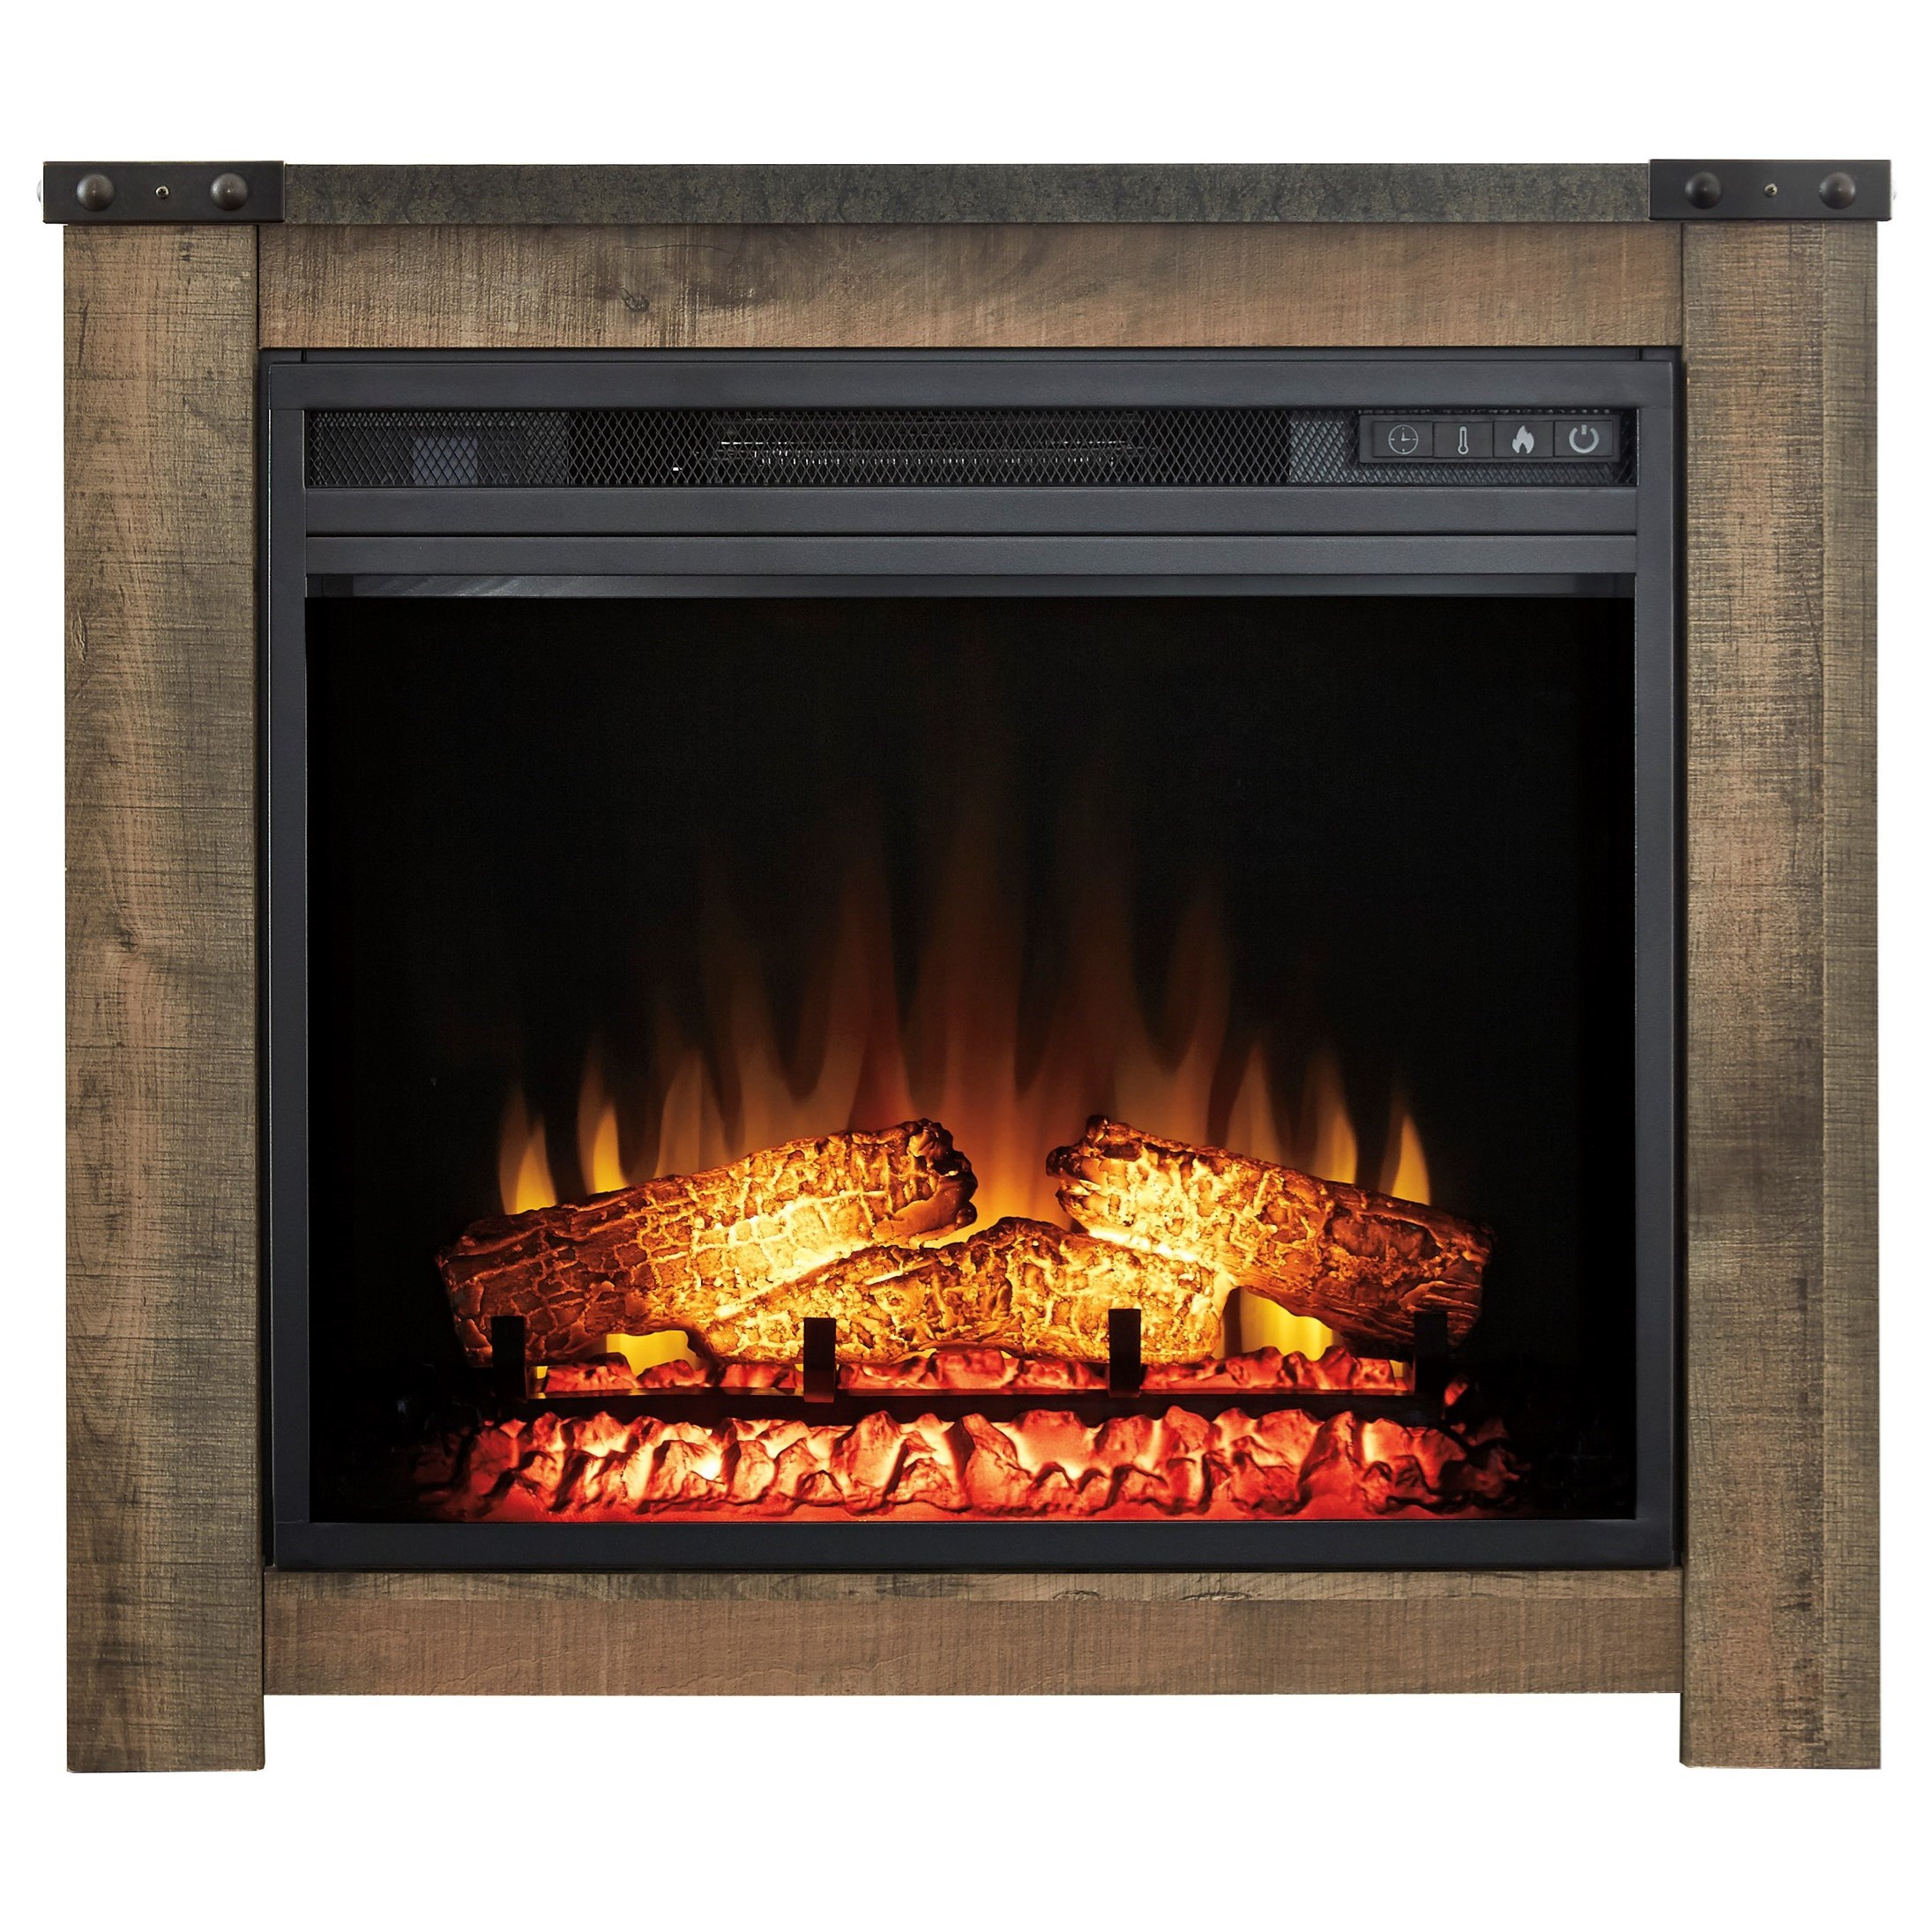 Trinell Fireplace Mantel with Fireplace Insert by Signature Design by Ashley at Darvin Furniture